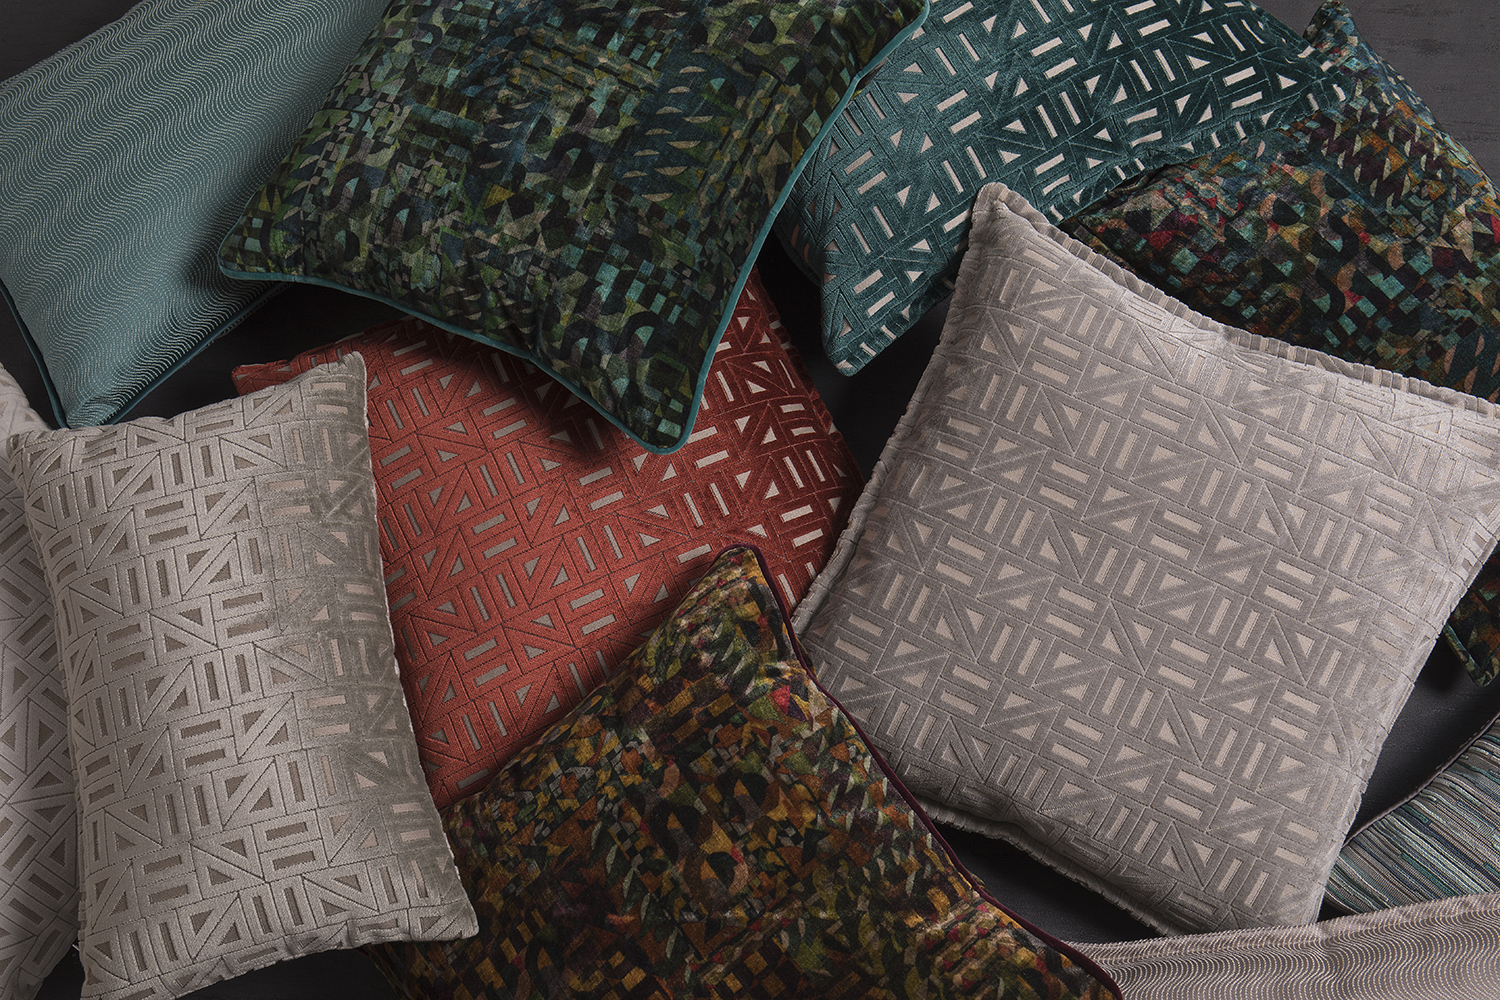 Upholstery Fabrics for your Living Room Pillows upholstery fabrics Upholstery Fabrics for your Living Room Pillows Upholstery Fabrics for your Living Room Pillows 1 1